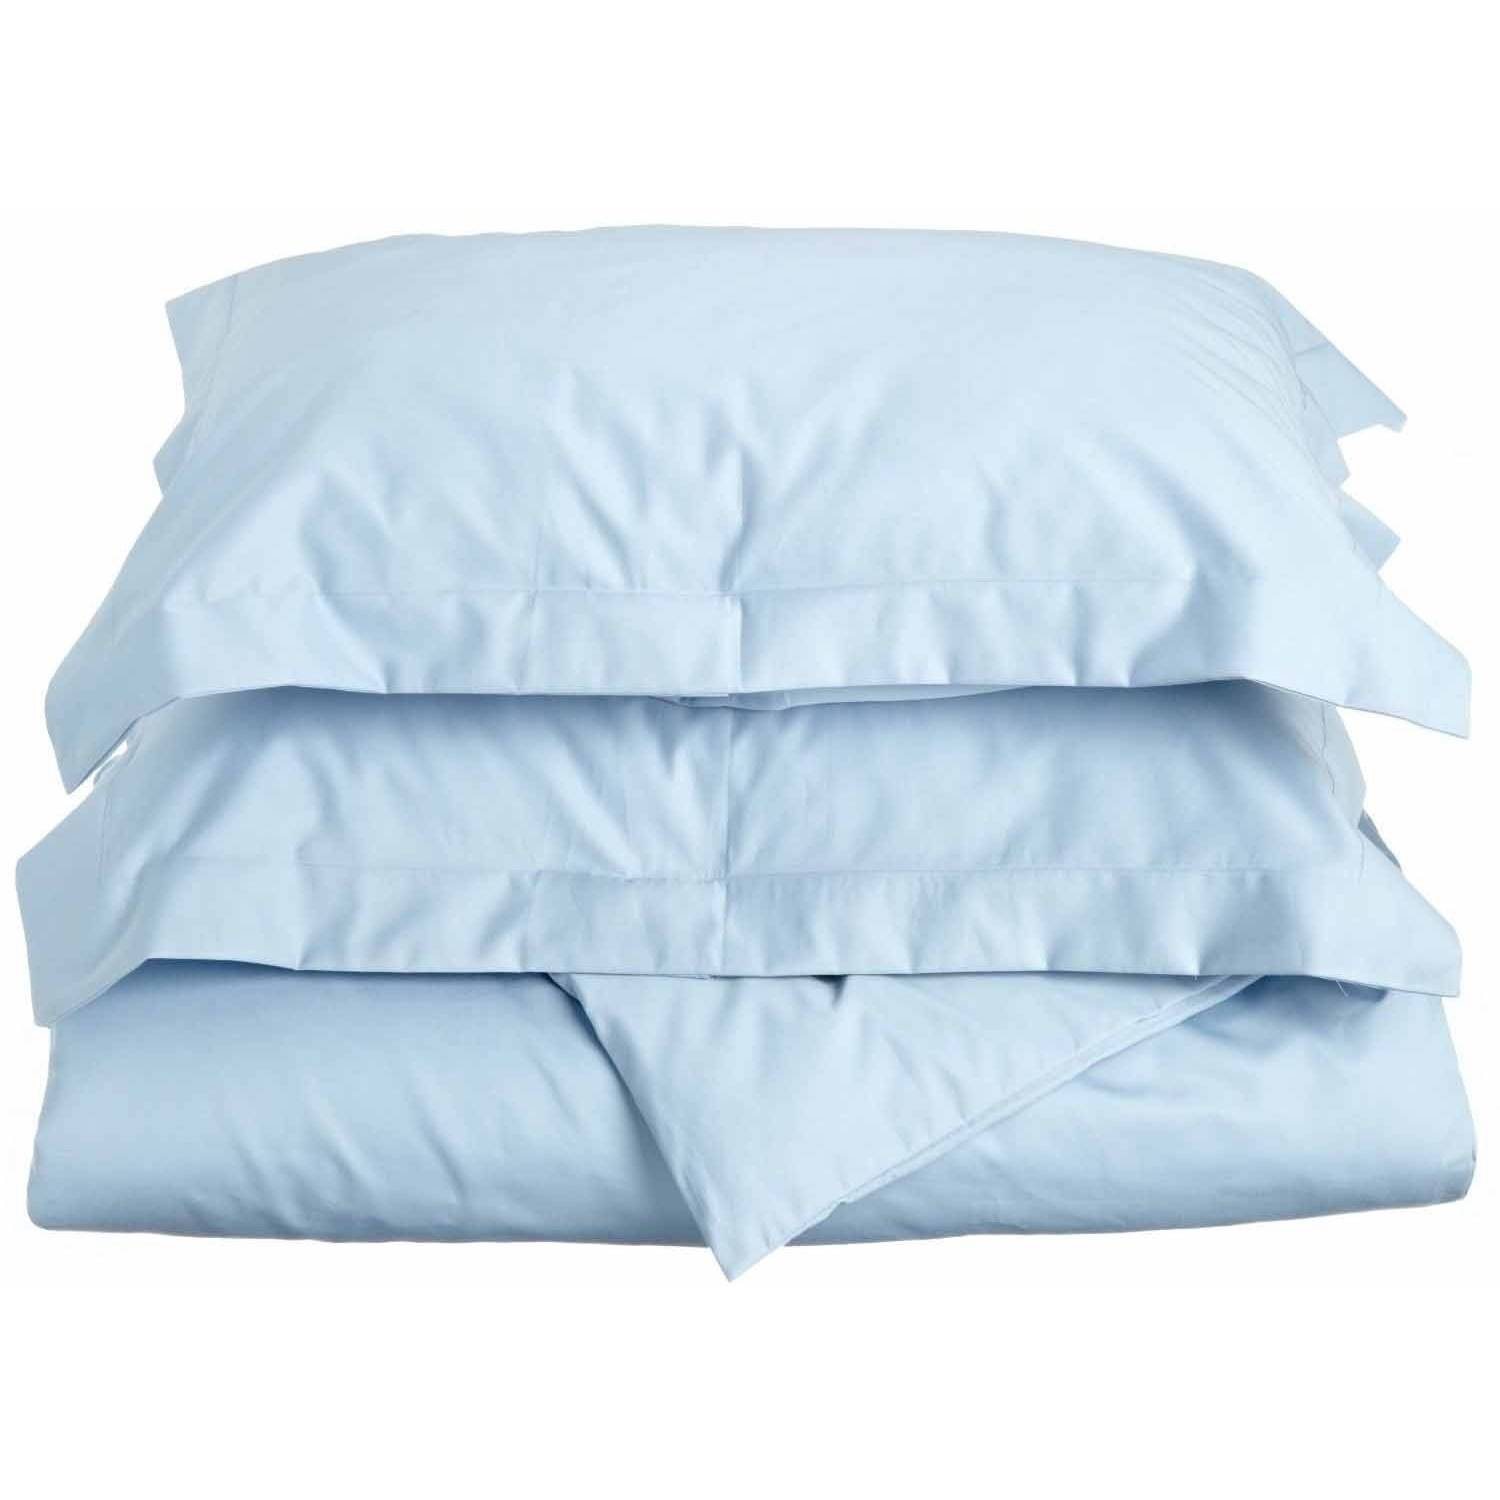 Superior 600 Thread Count Wrinkle Resistant Cotton Blend Solid Duvet Cover Set with Sham